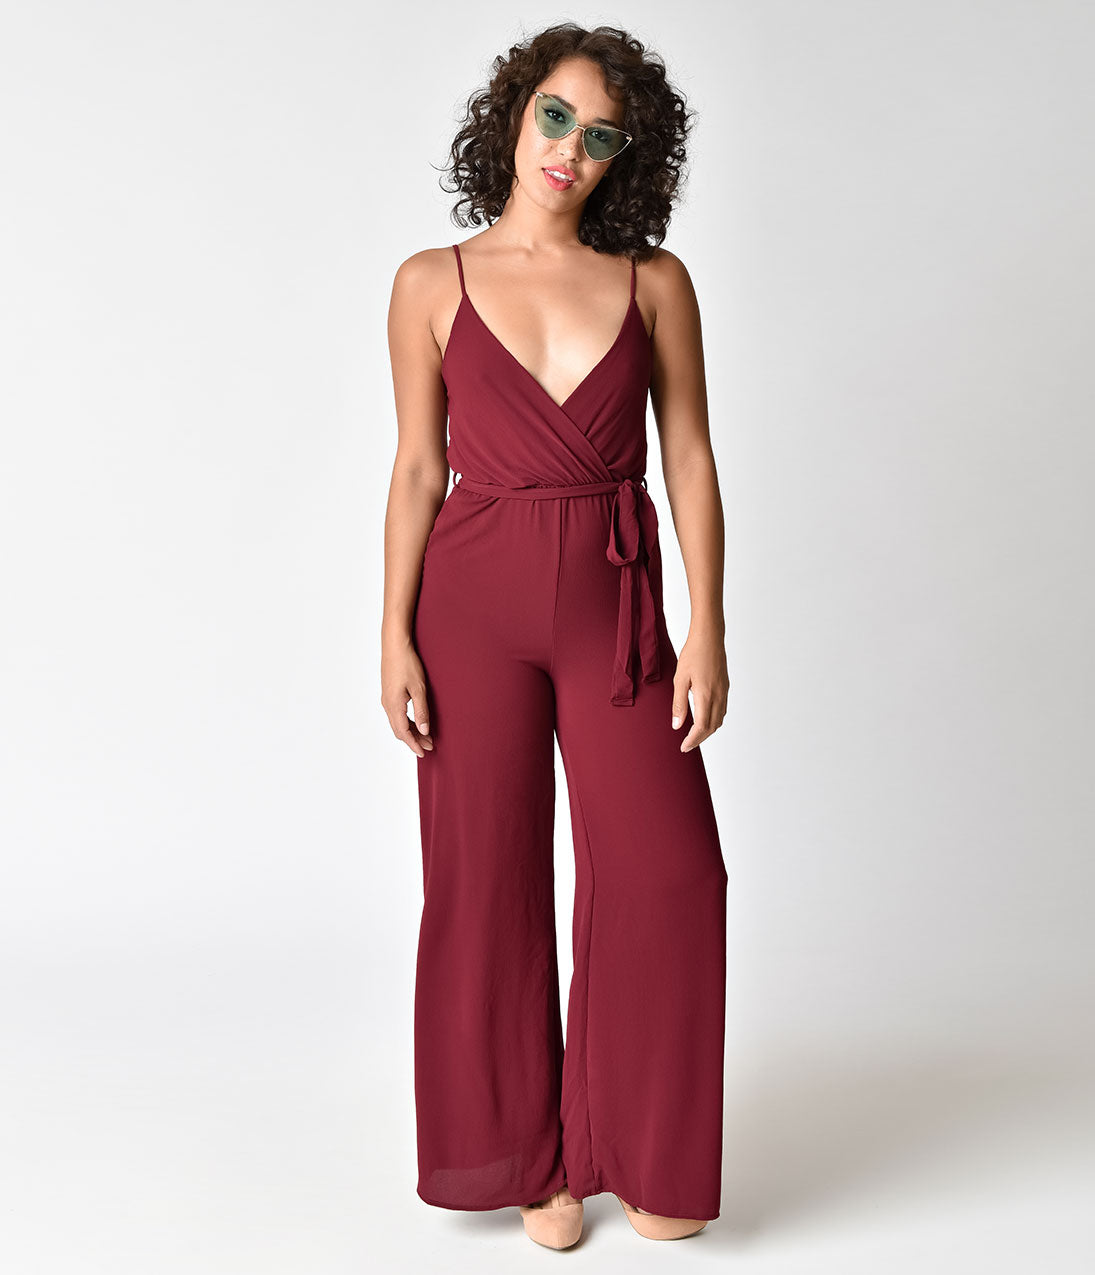 Vintage High Waisted Trousers, Sailor Pants, Jeans Retro 1970s Style Burgundy Spaghetti Strap Crepe Jumpsuit $44.00 AT vintagedancer.com